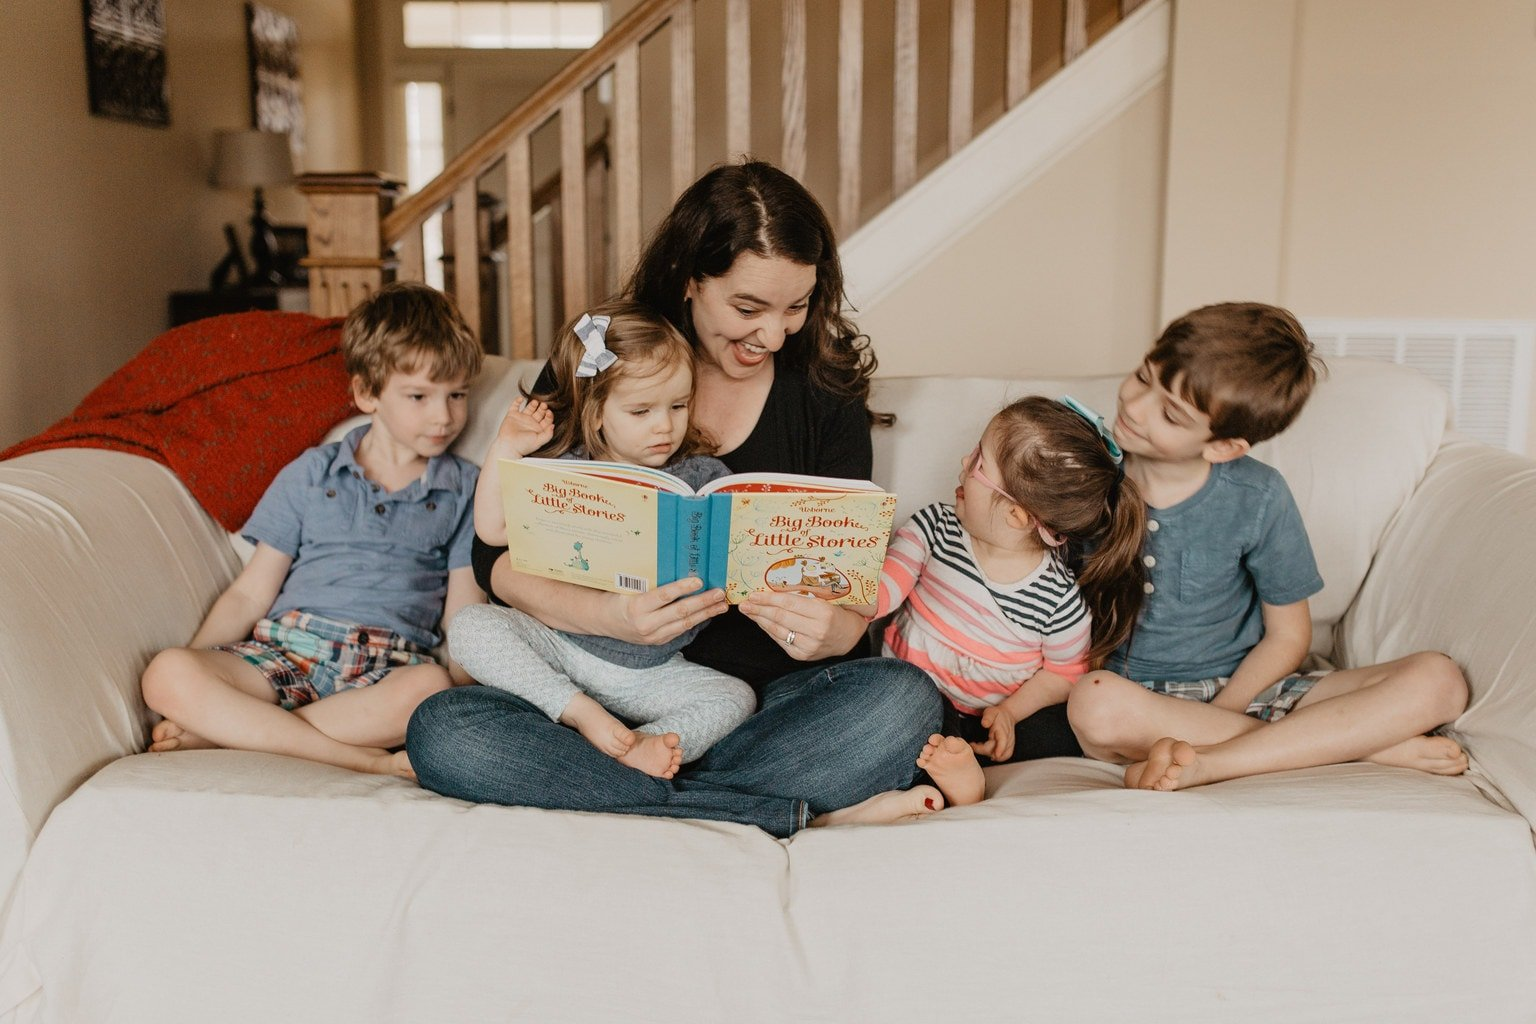 Lifestyle Homeschooling: The Family that Reads Together